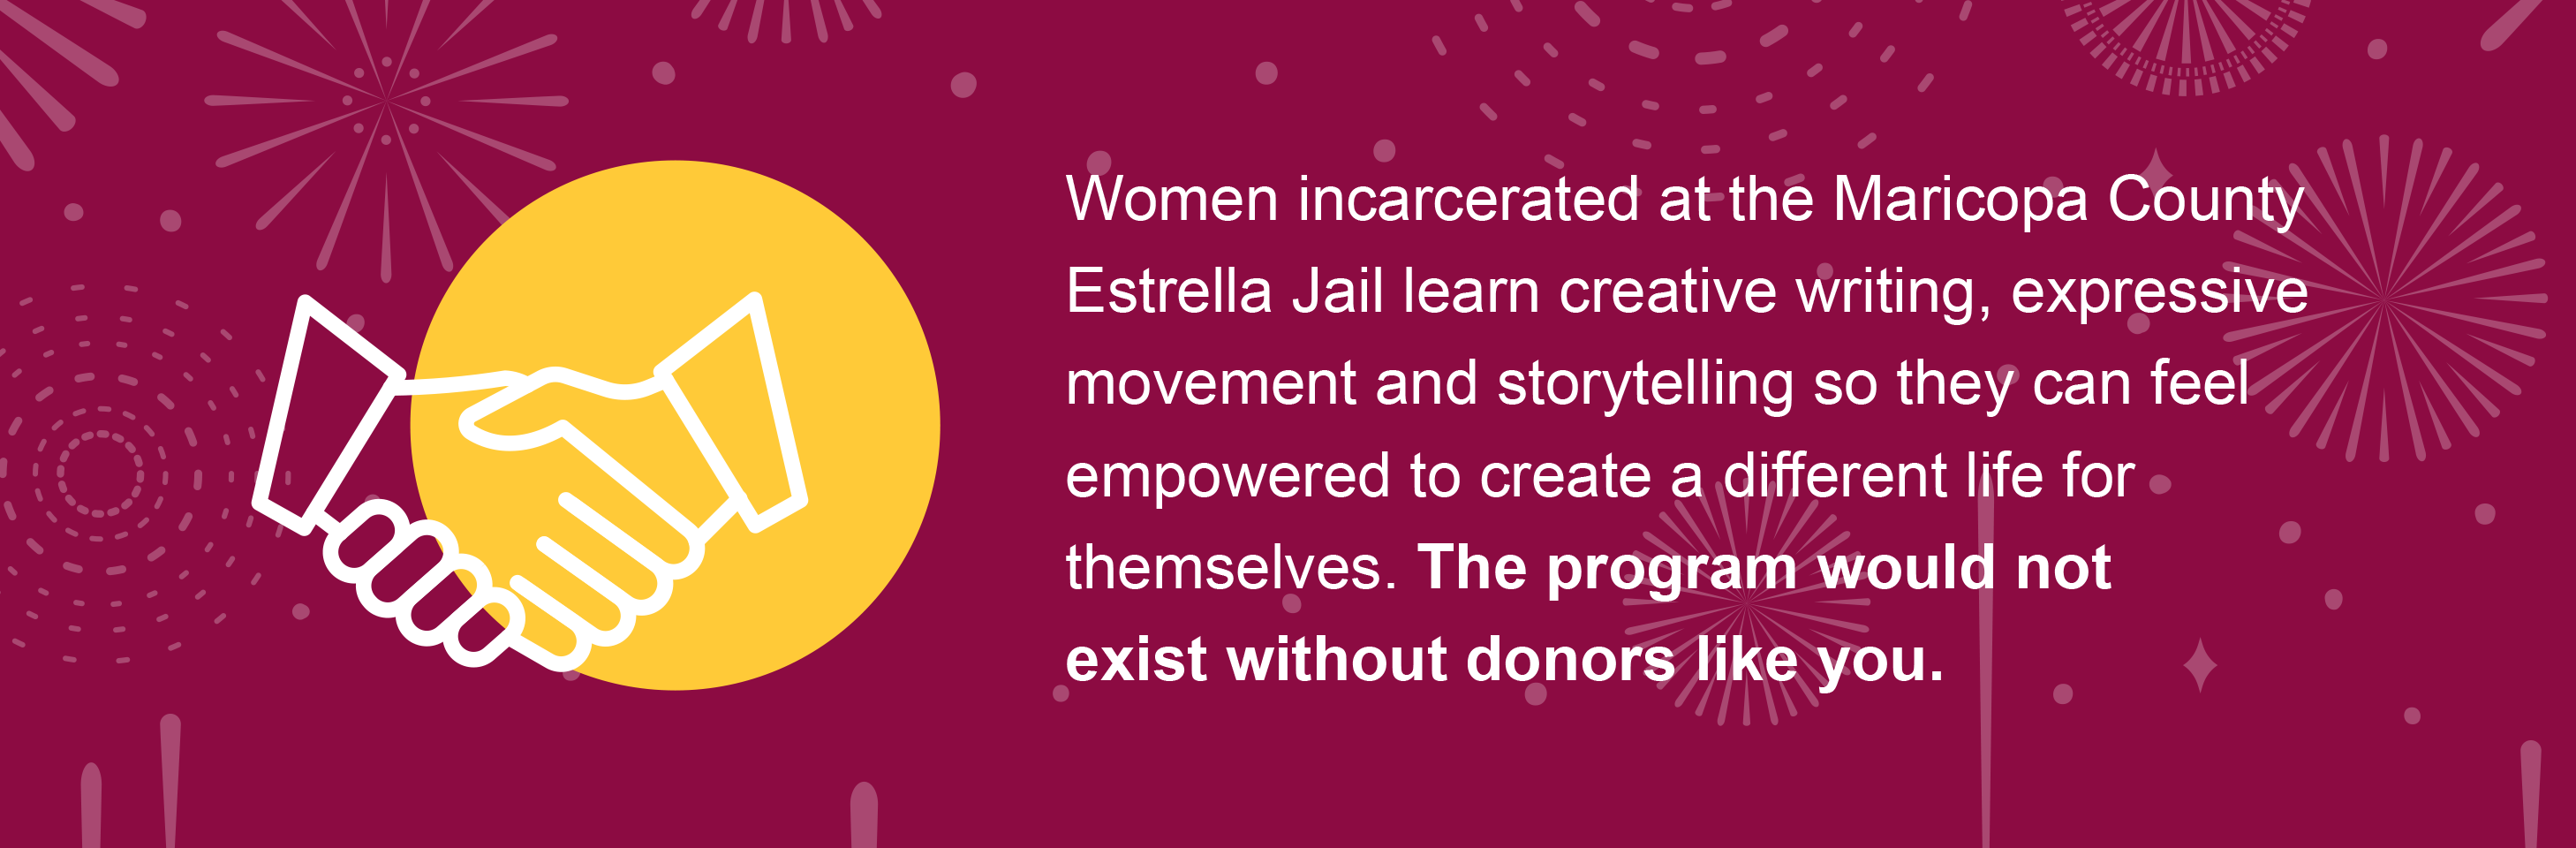 Women incarcerated at the Maricopa County Estrella Jail learn creative writing, expressive movement and storytelling so they can feel empowered to create a different life for themselves. The program would not exist without donors like you.